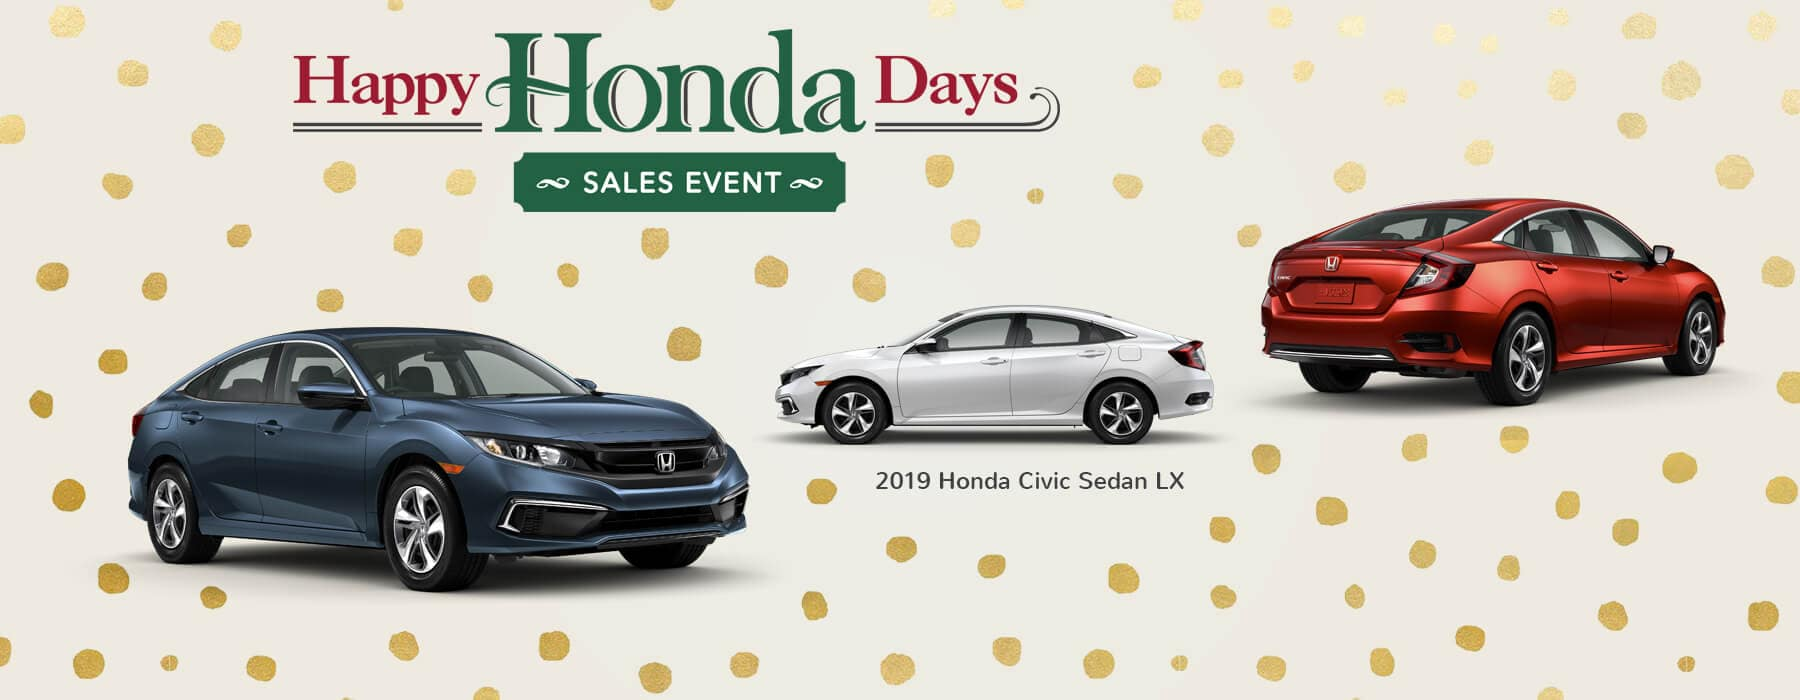 Happy Honda Days Sales Event 2019 Honda Civic Sedan Slider